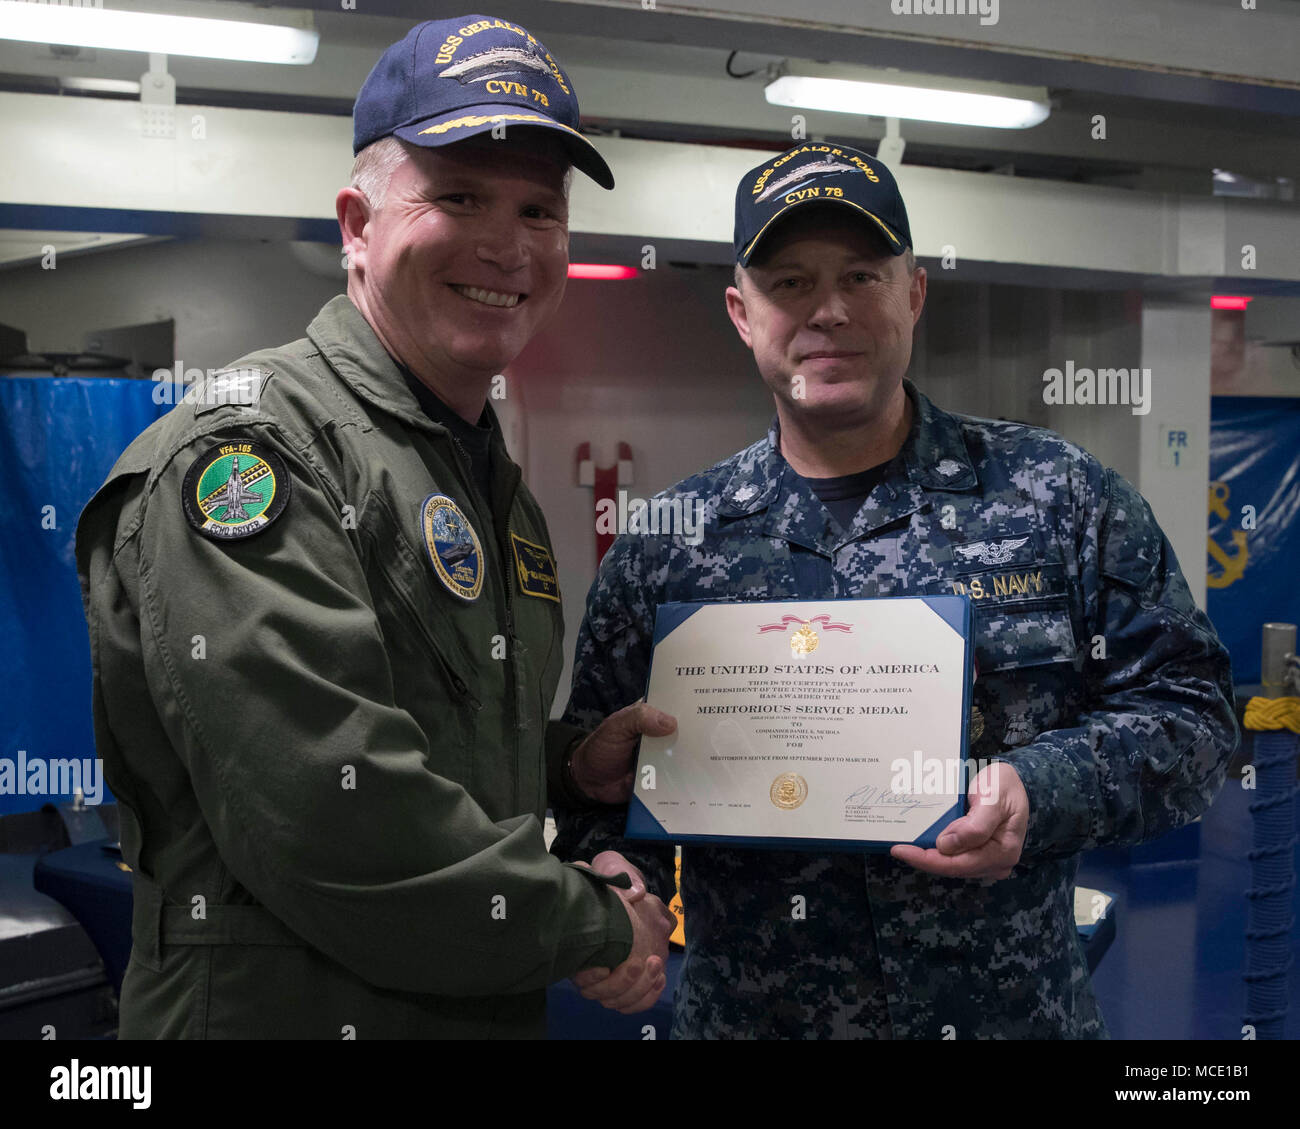 fords cvn 78 administrative officer receives a meritorious service medal from capt richard mccormack fords commanding officer us navy photo